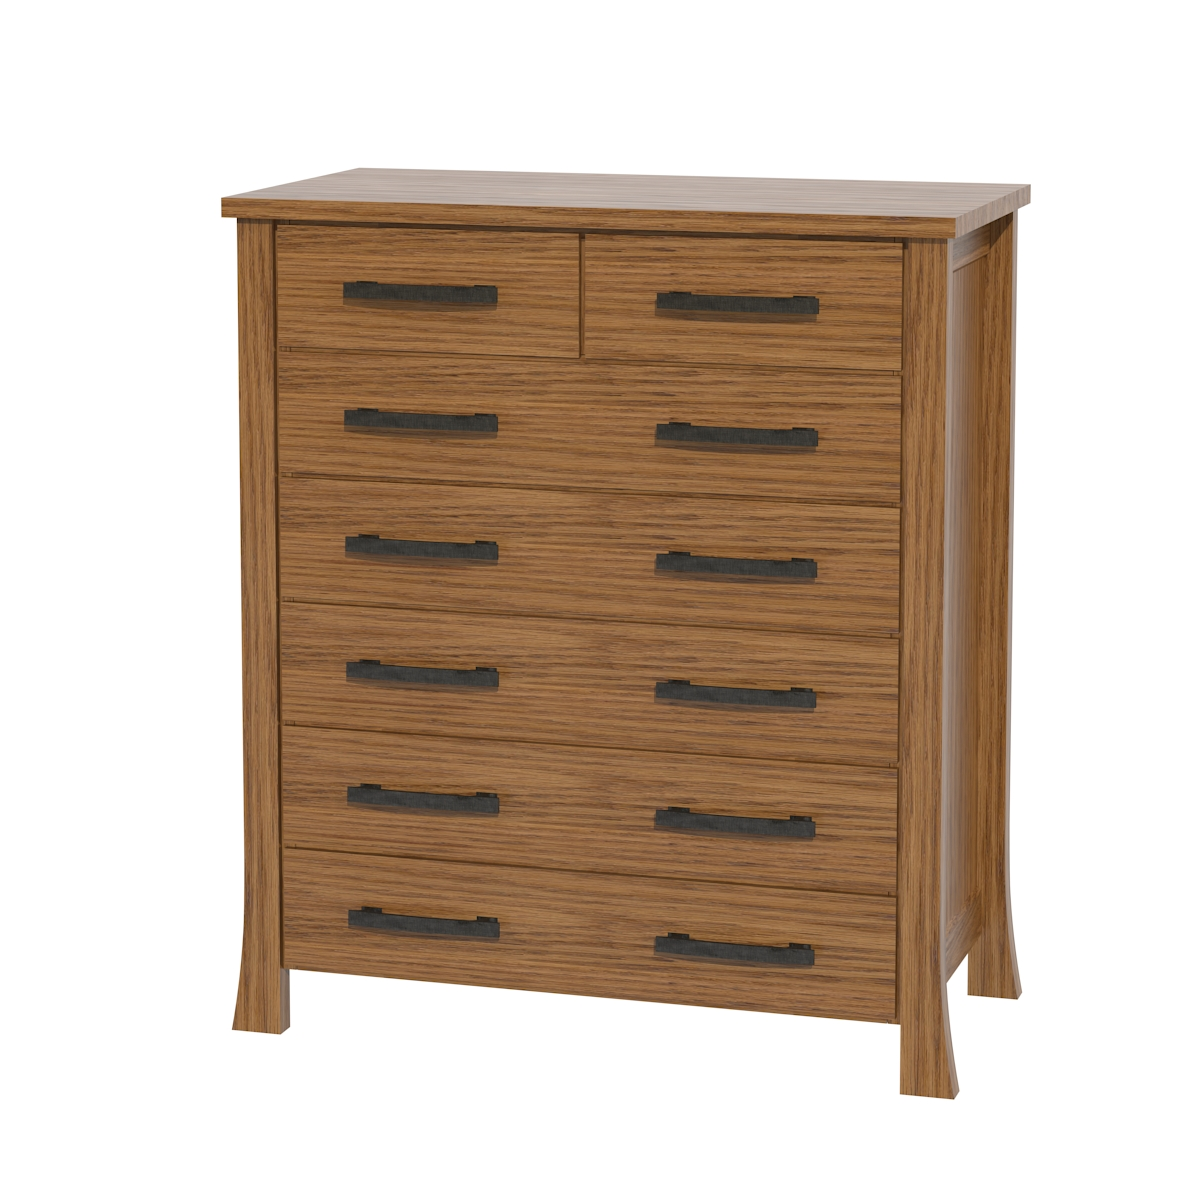 #714D2E Palermo Vertical Dressers Solid Wood Dresser In The  with 1200x1200 px of Highly Rated Vertical Dressers 12001200 picture/photo @ avoidforclosure.info